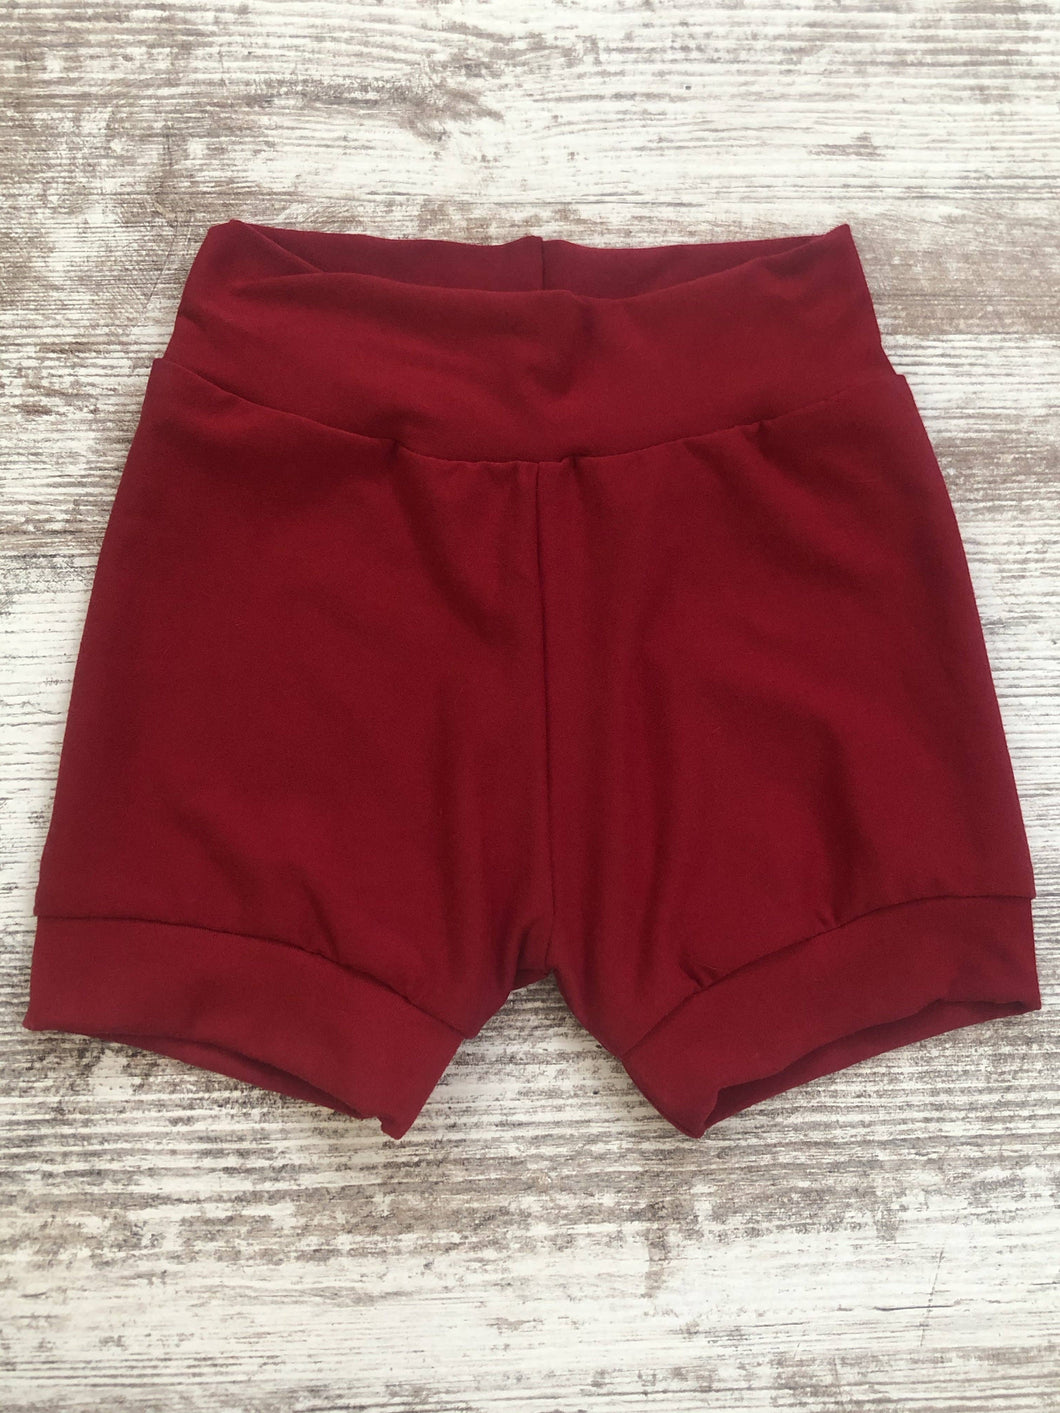 Jena Bug Baby Boutique - Rose Red Shorties